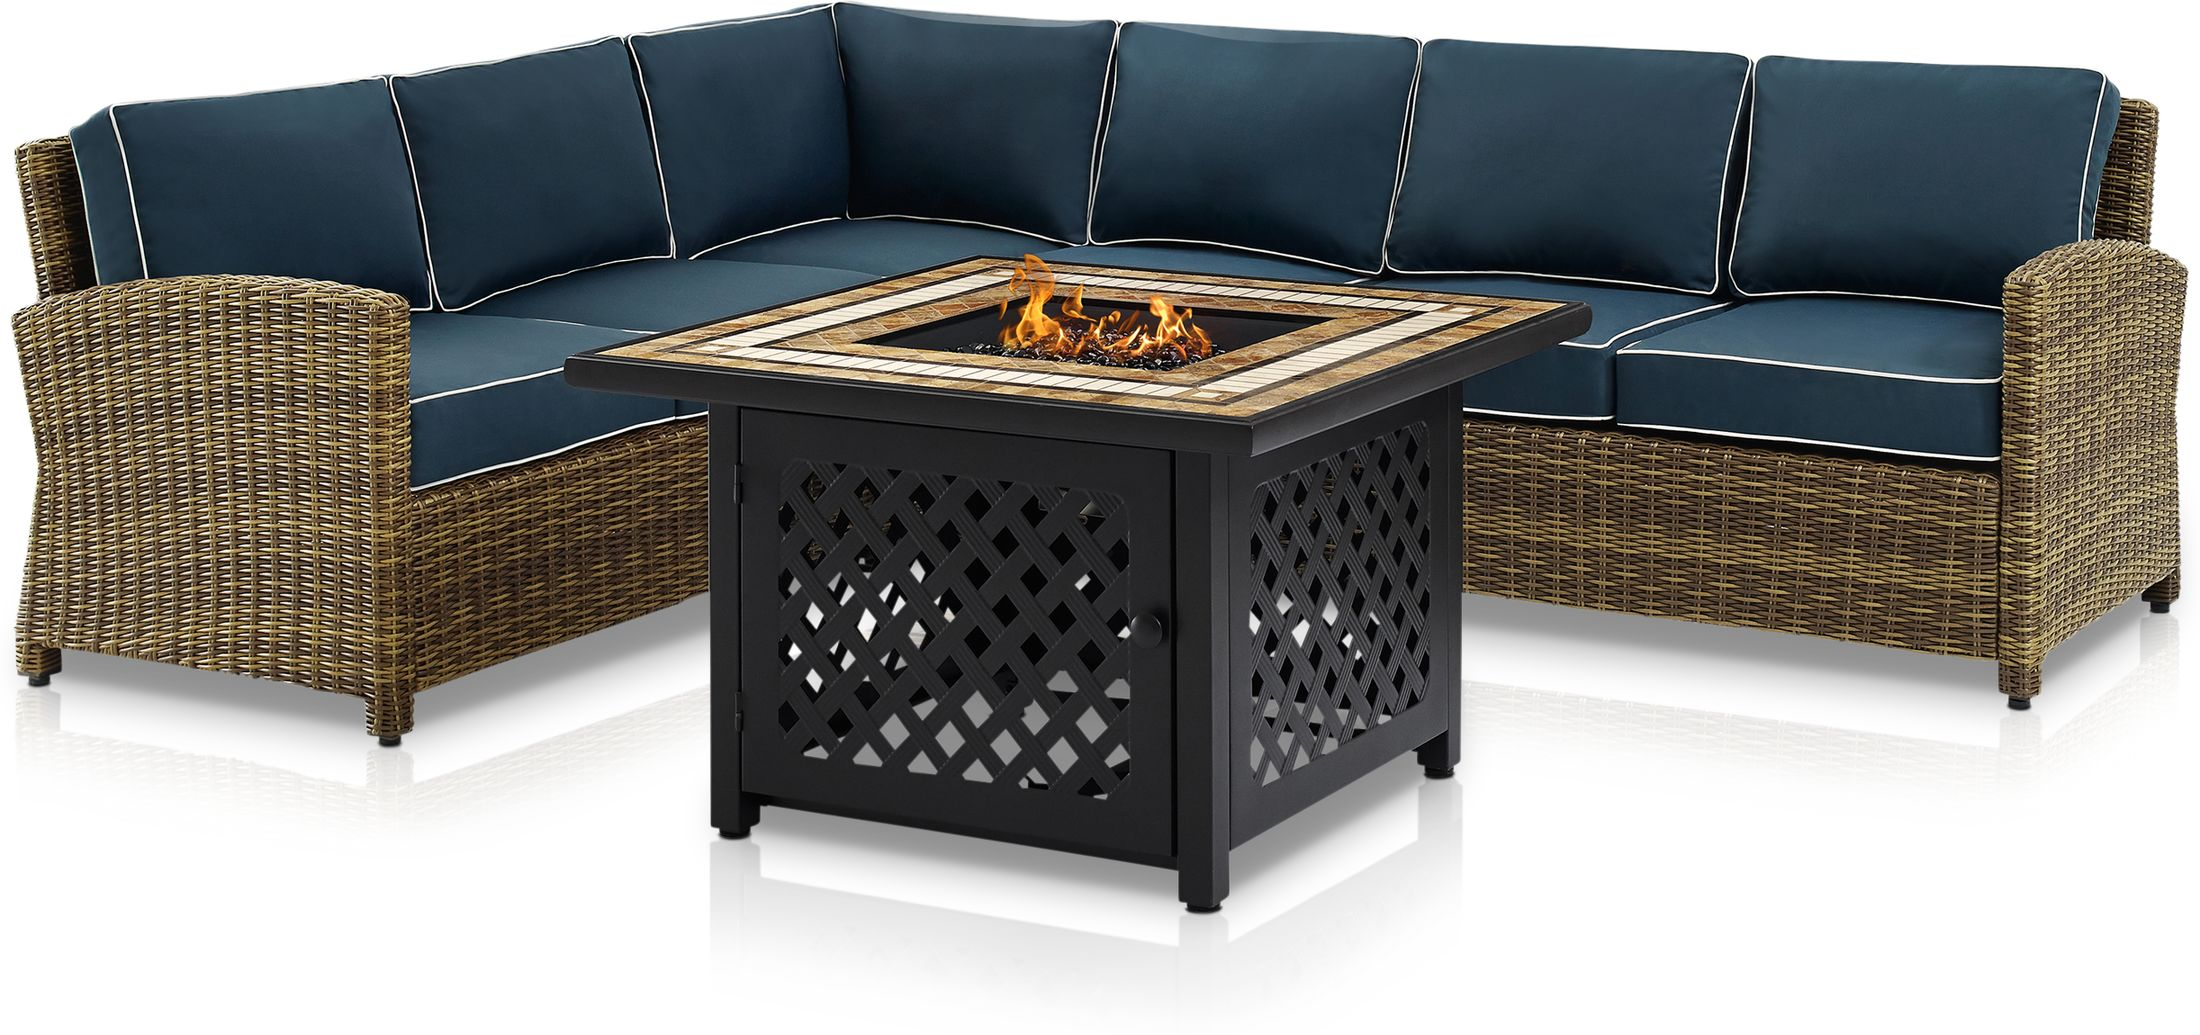 Outdoor Furniture - Destin 4-Piece Outdoor Sectional and Fire Table Set